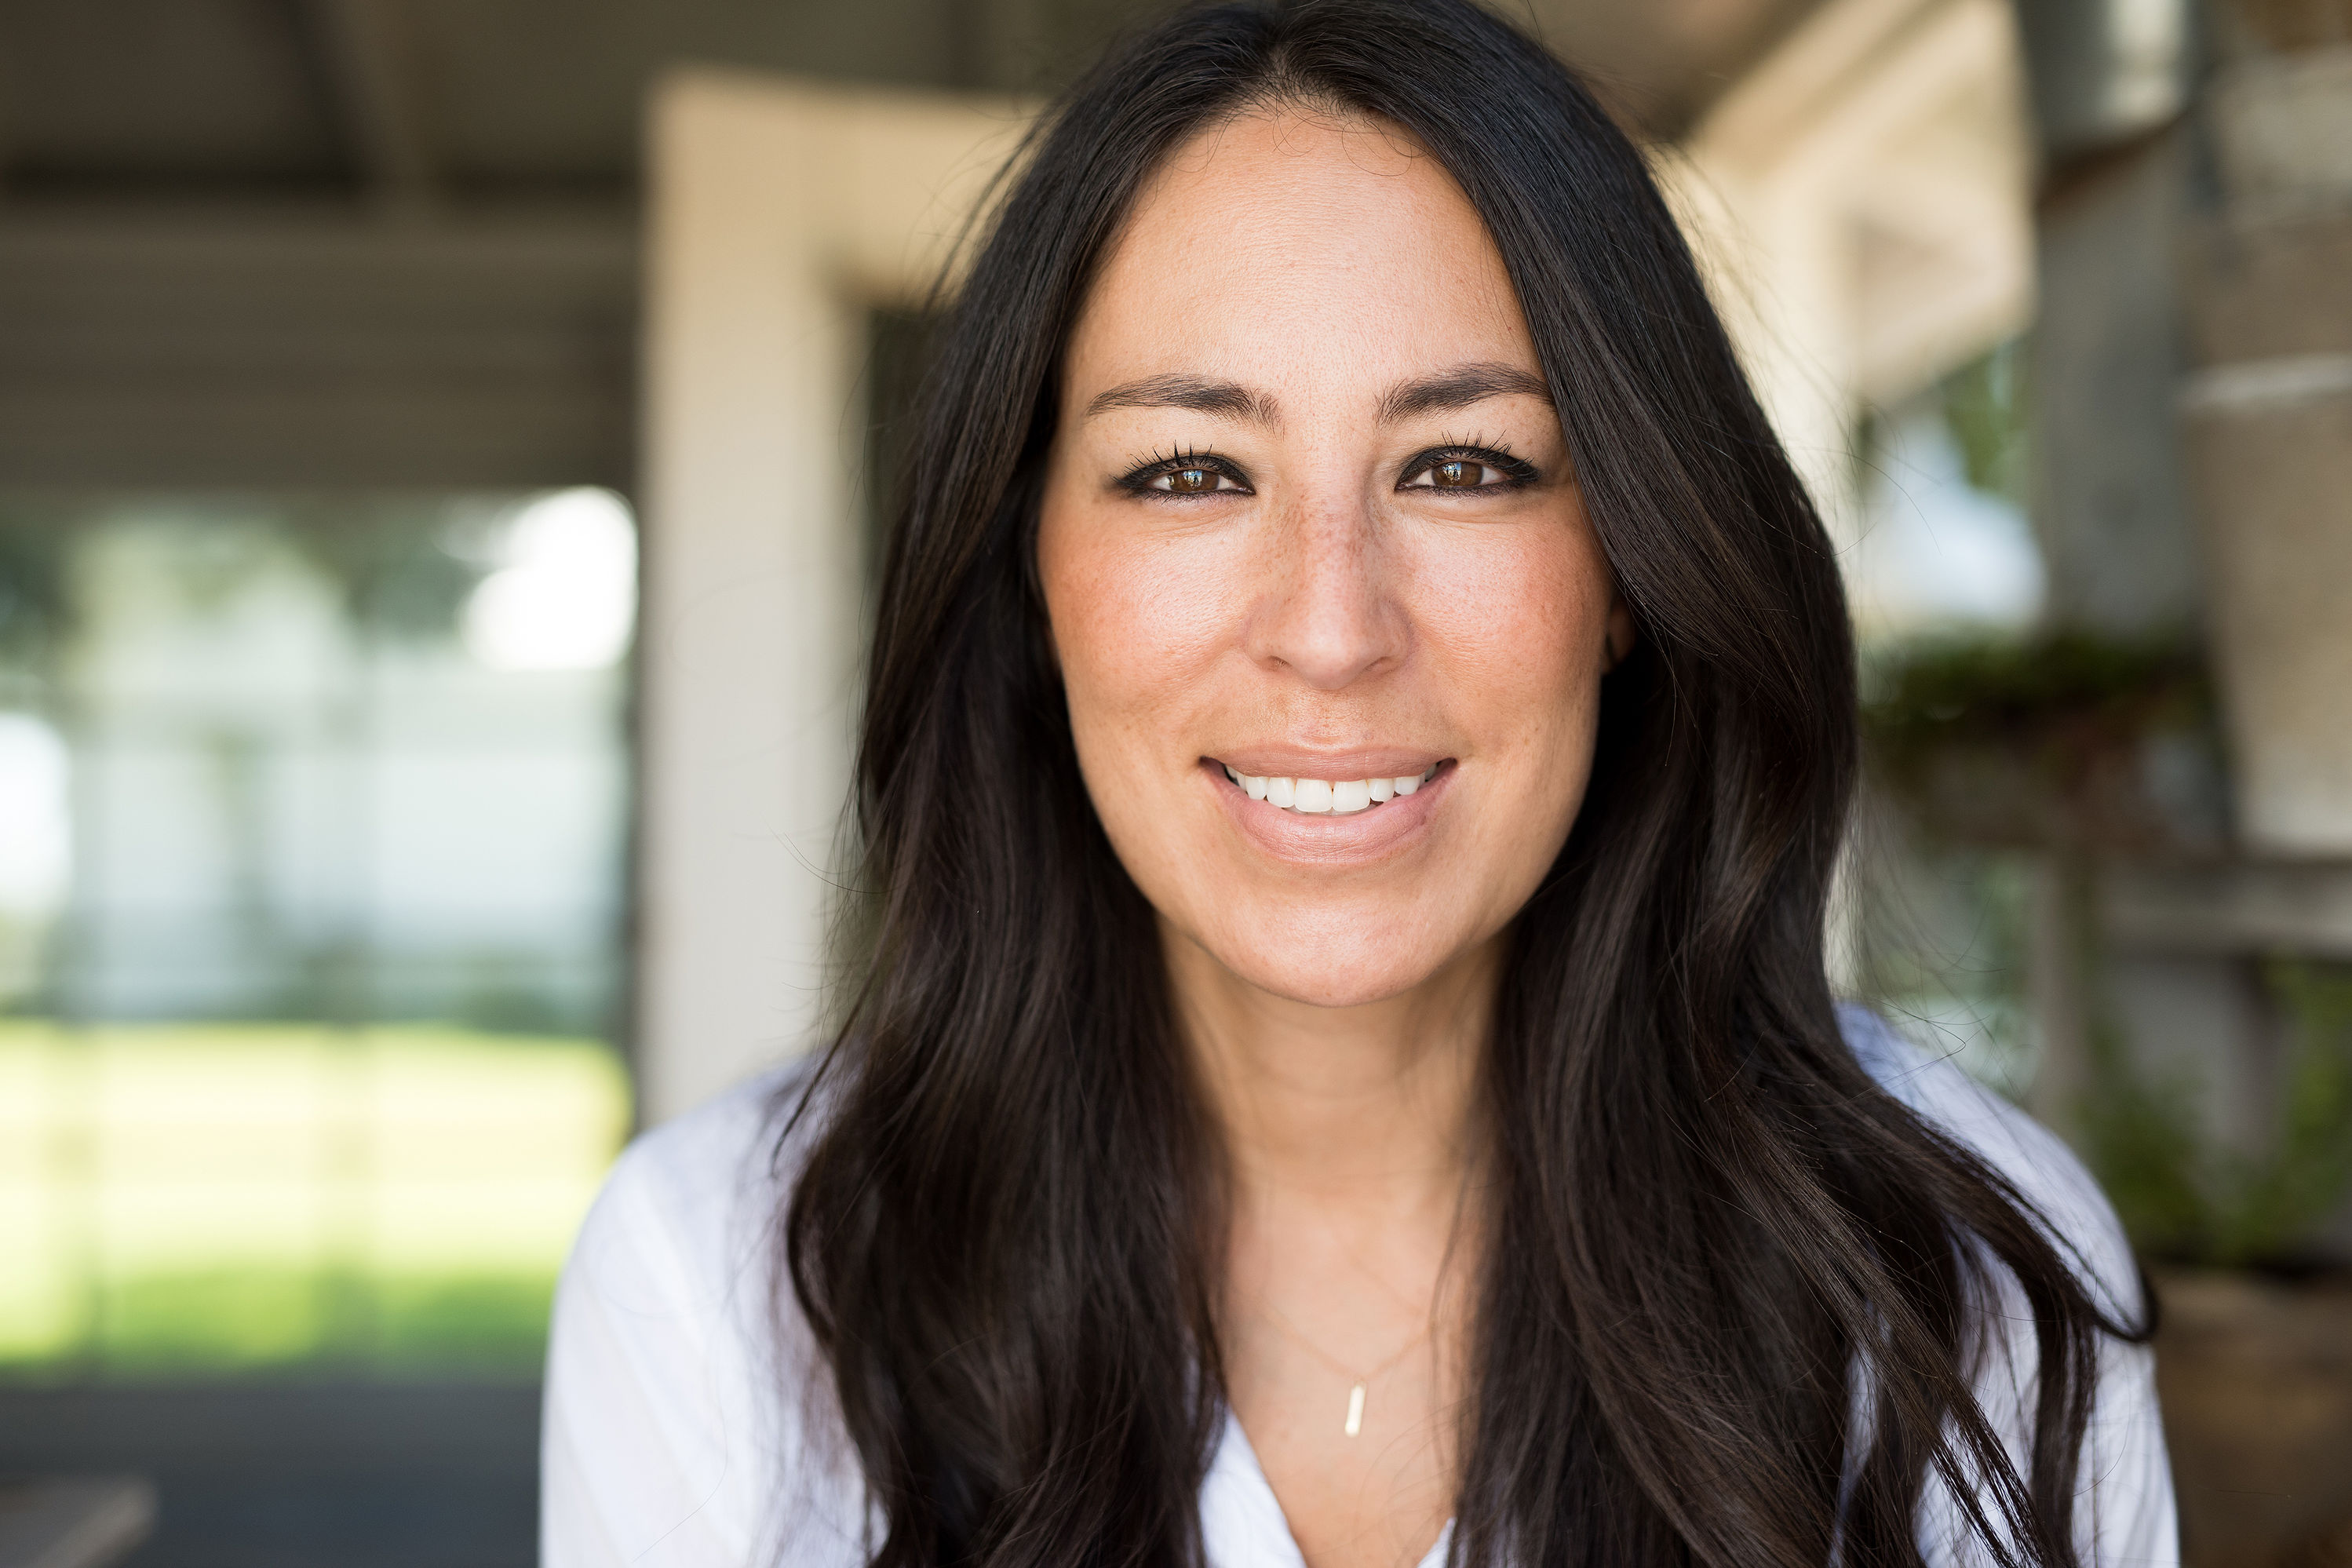 Joanna Gaines Gives Fans Heartwarming Glimpse into Grandparents' Love Story